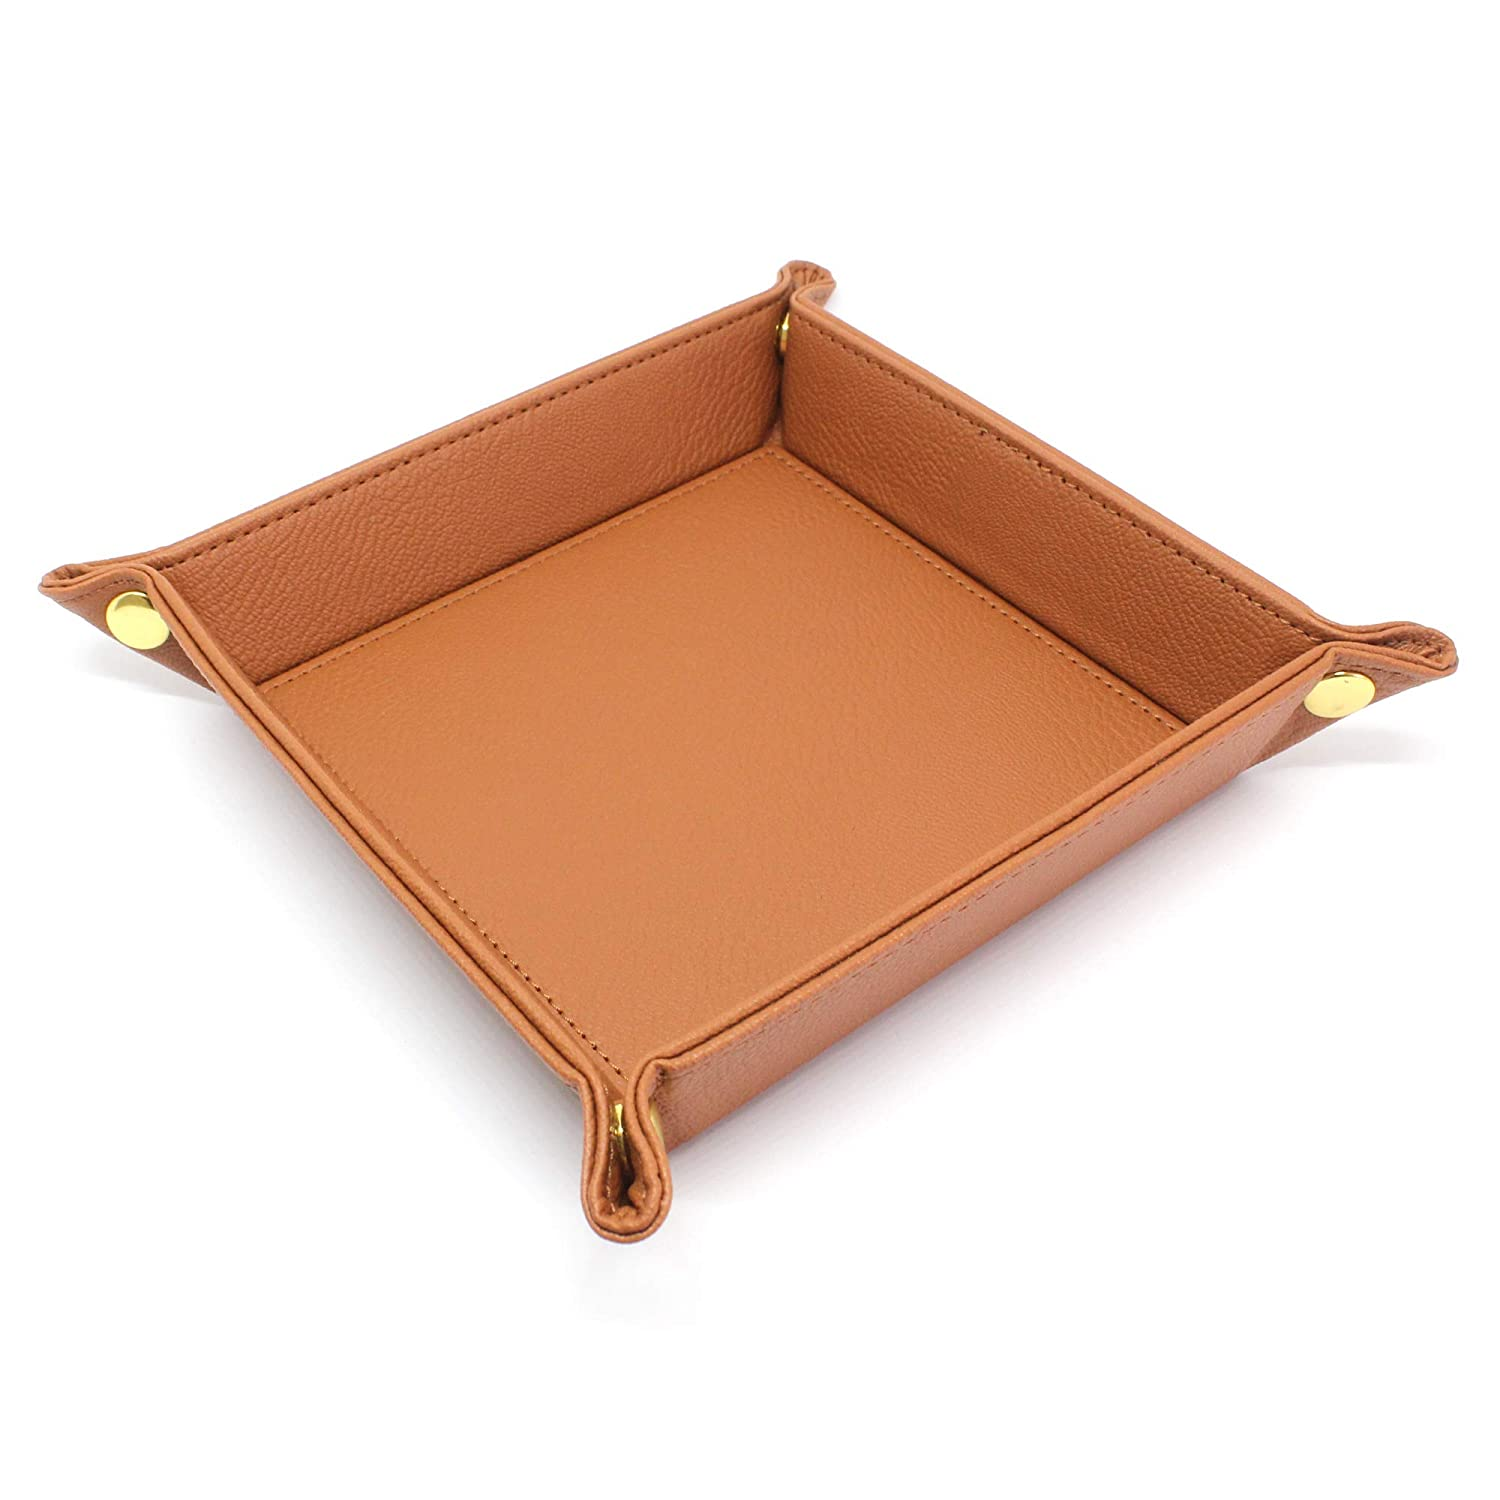 elmina Valet Tray for Men and Woman – Faux Leather Catchall Snap Jewellery Bedside Storage Organizer for Keys, Coins, Dice, Watch Tan Brown